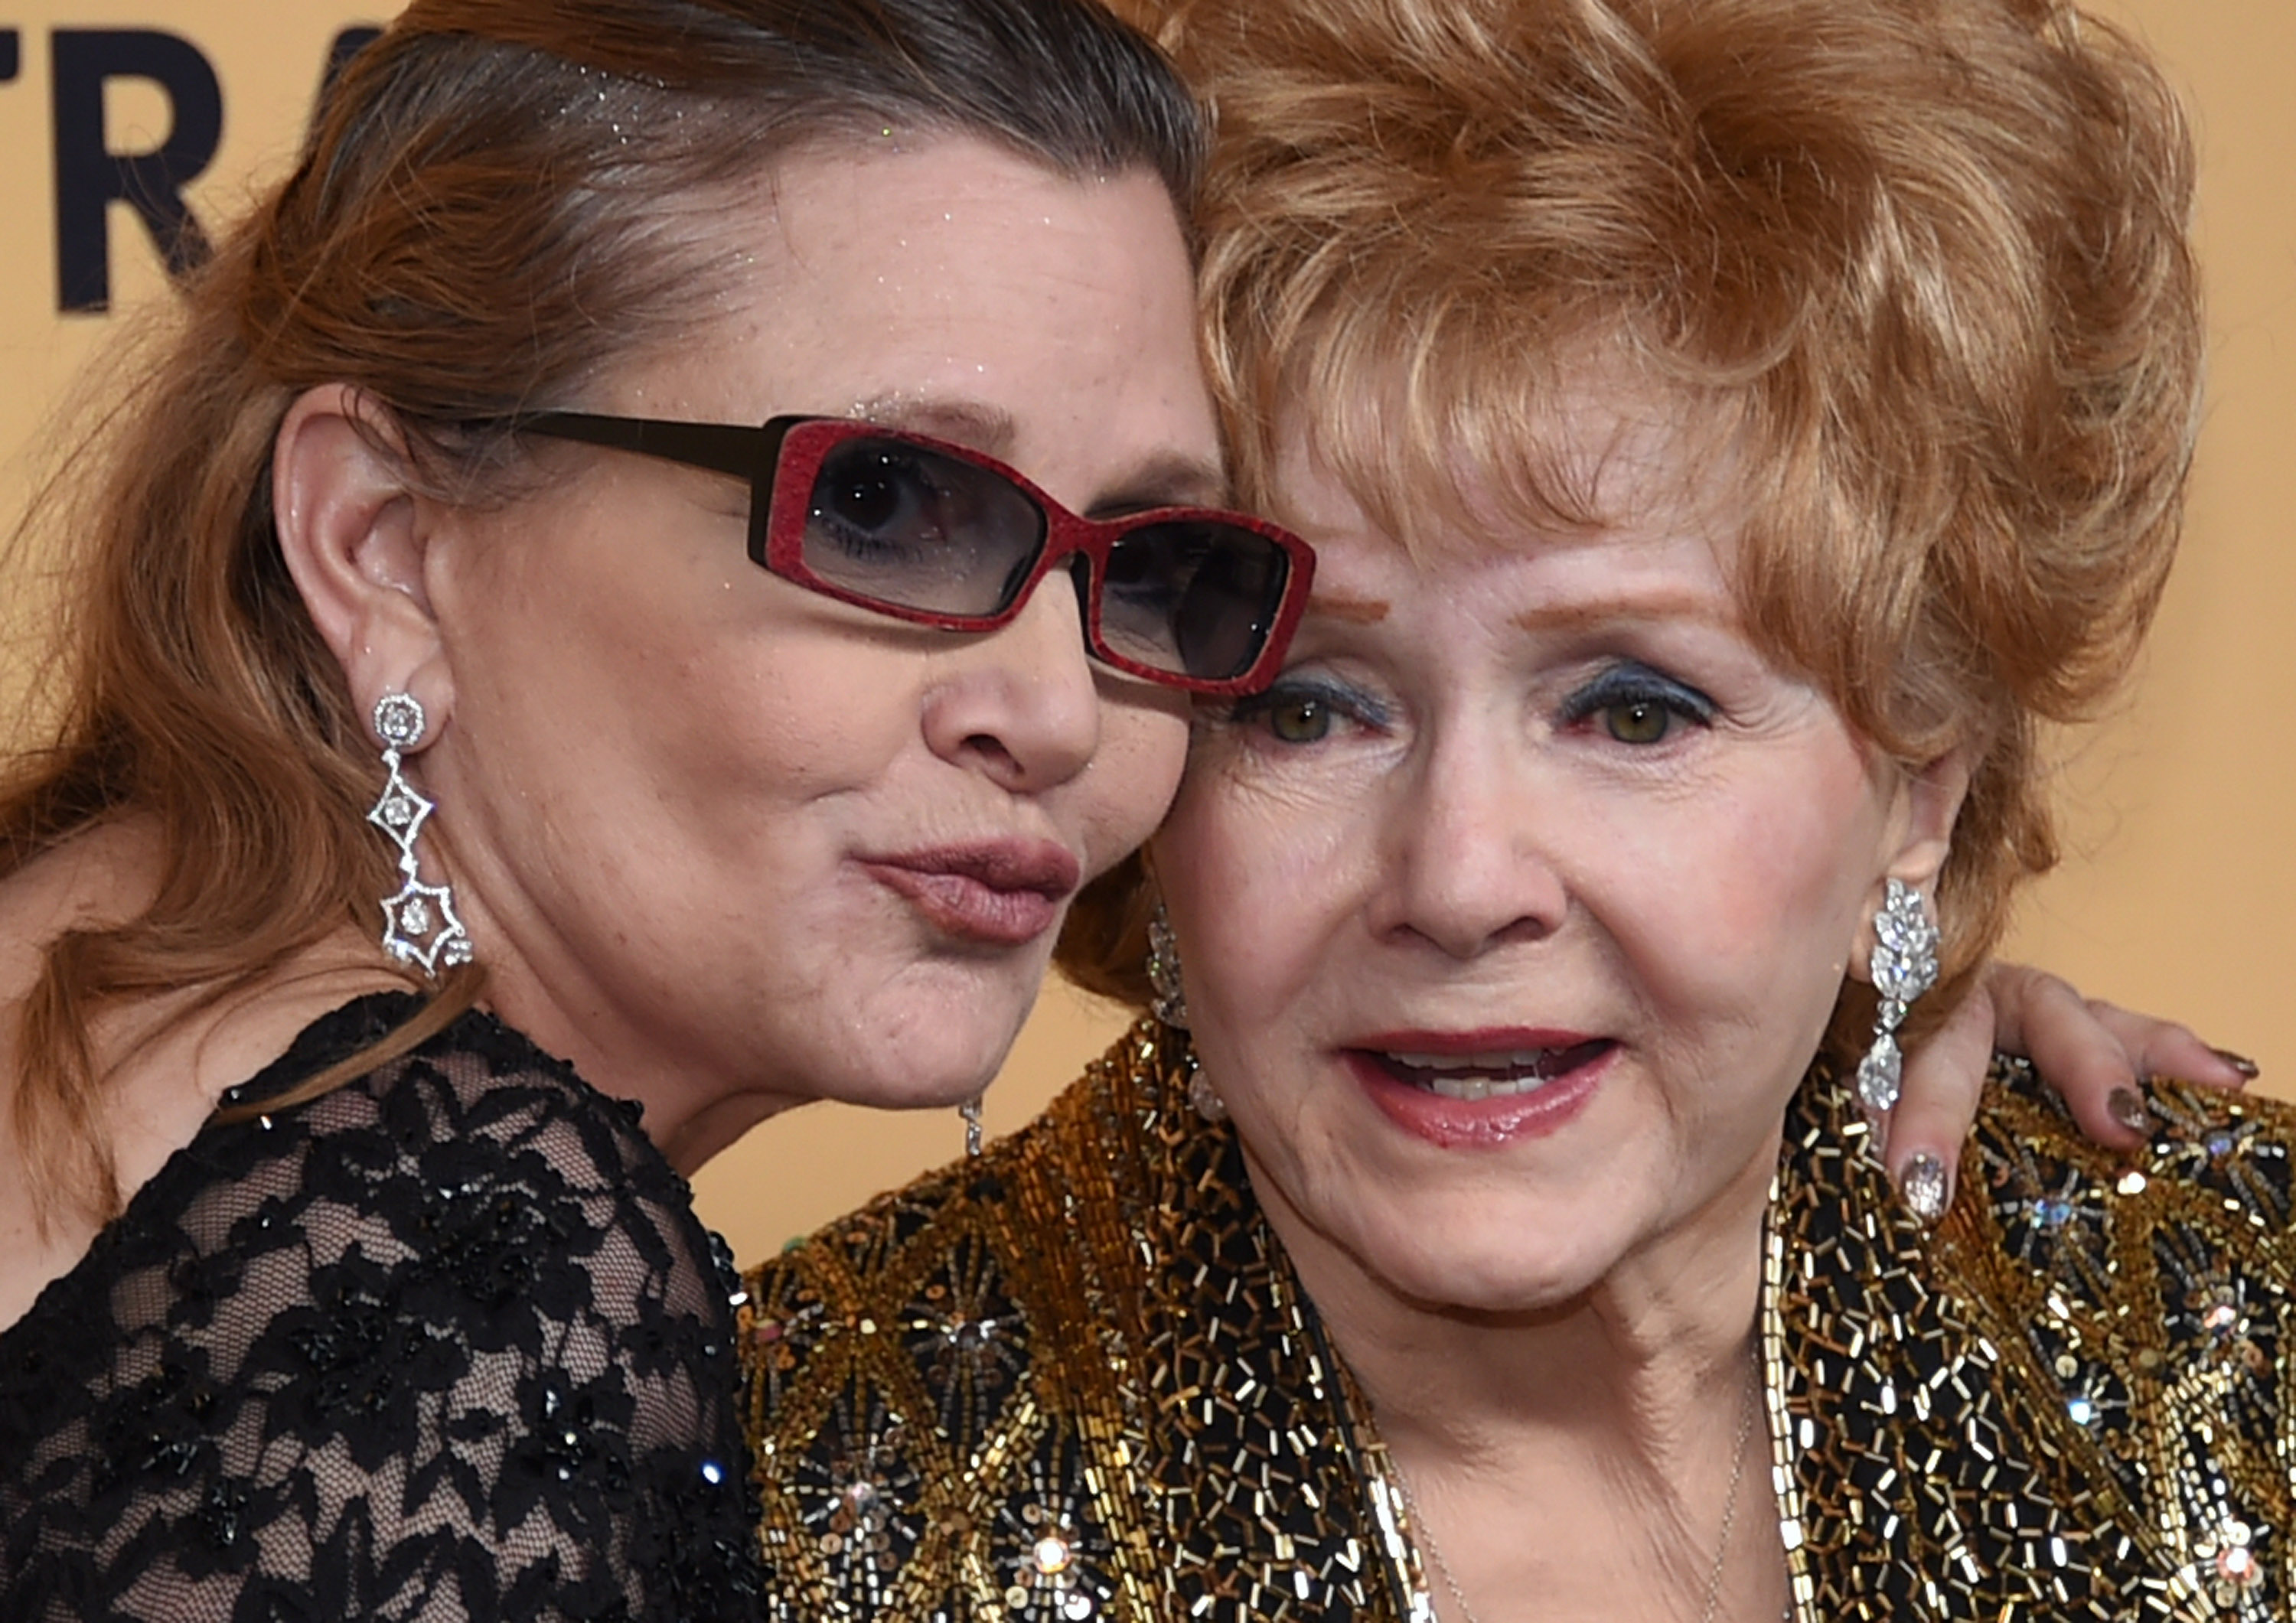 It's been confirmed that Carrie Fisher and Debbie Reynolds will have a joint funeral, and our thoughts are with their family today